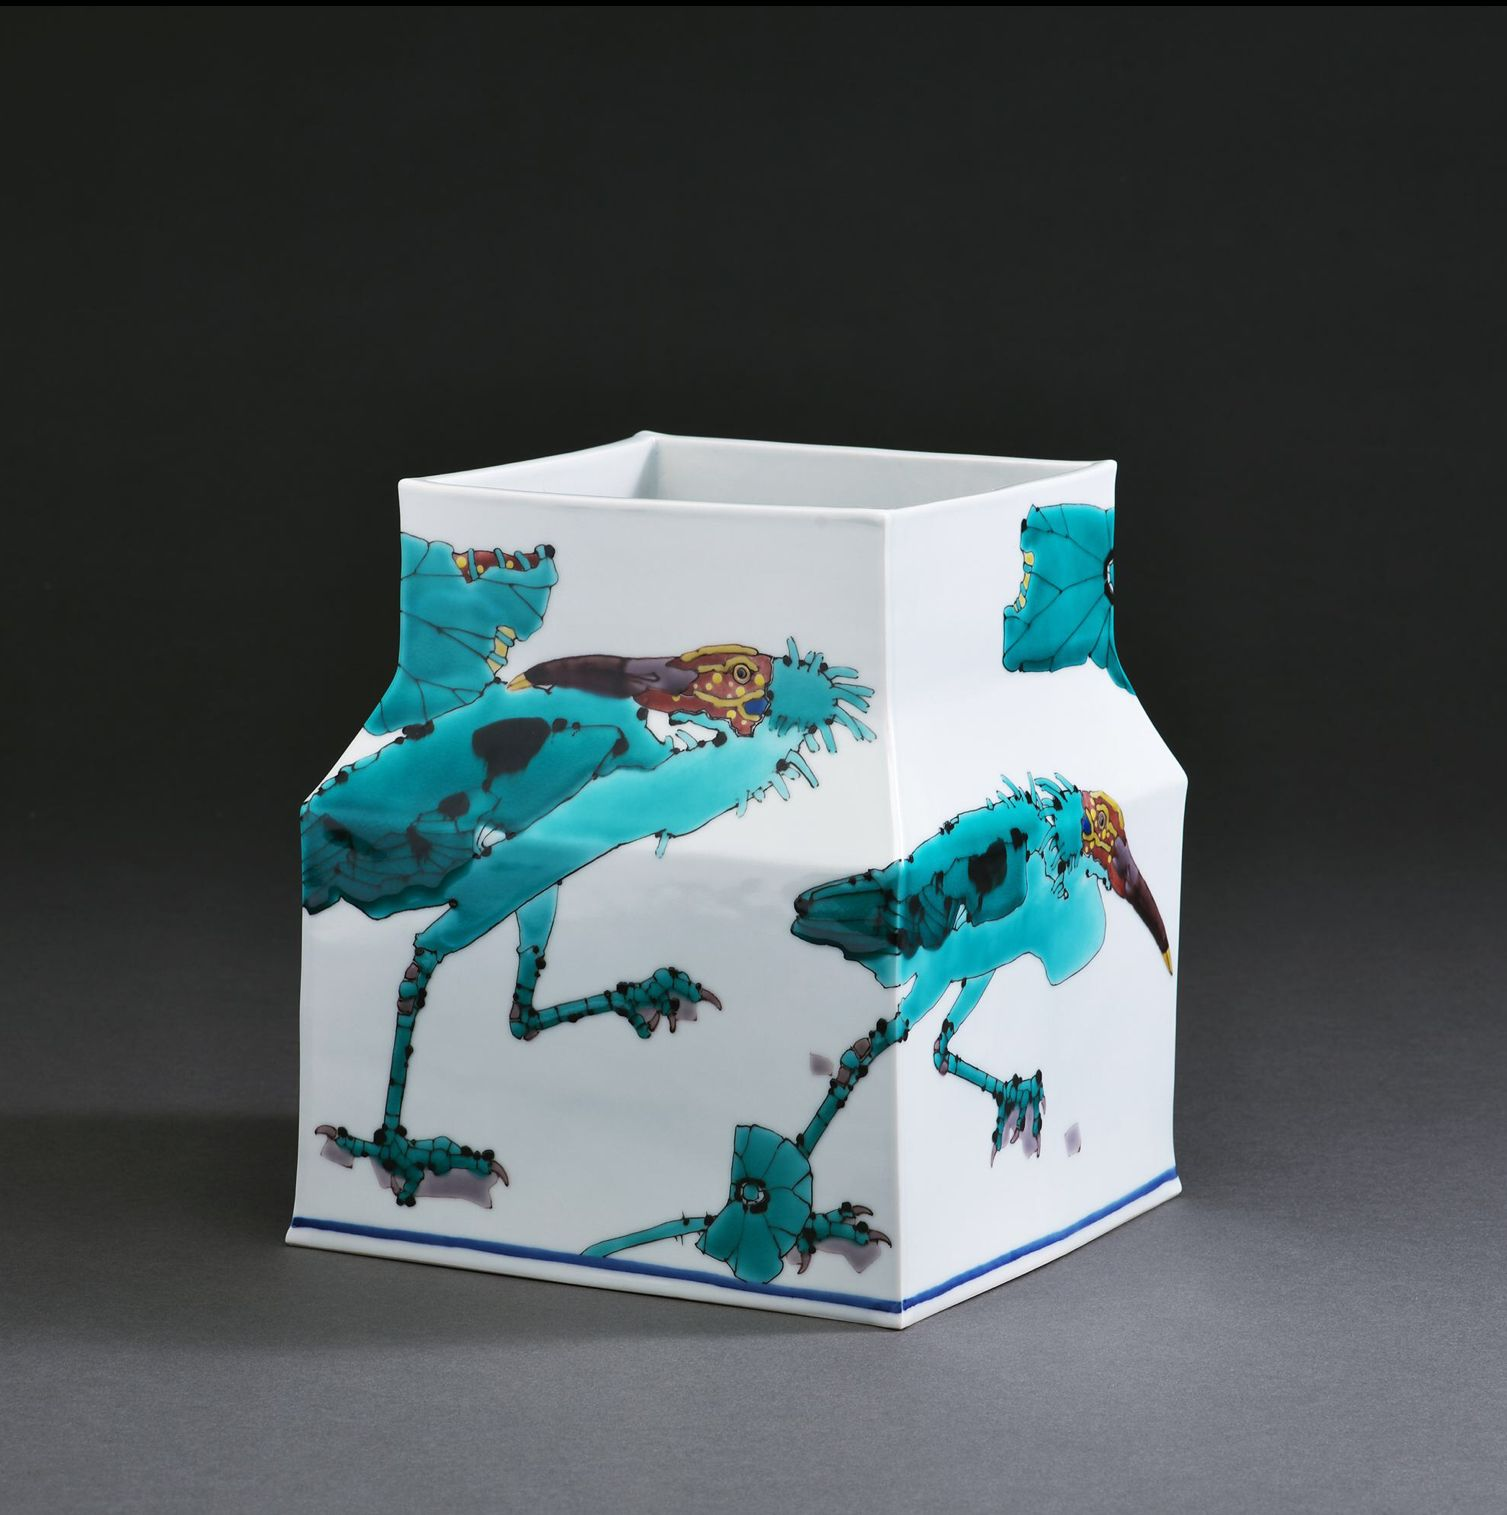 Square vessel with sloped shoulders depicting scenes of ibises, 2017